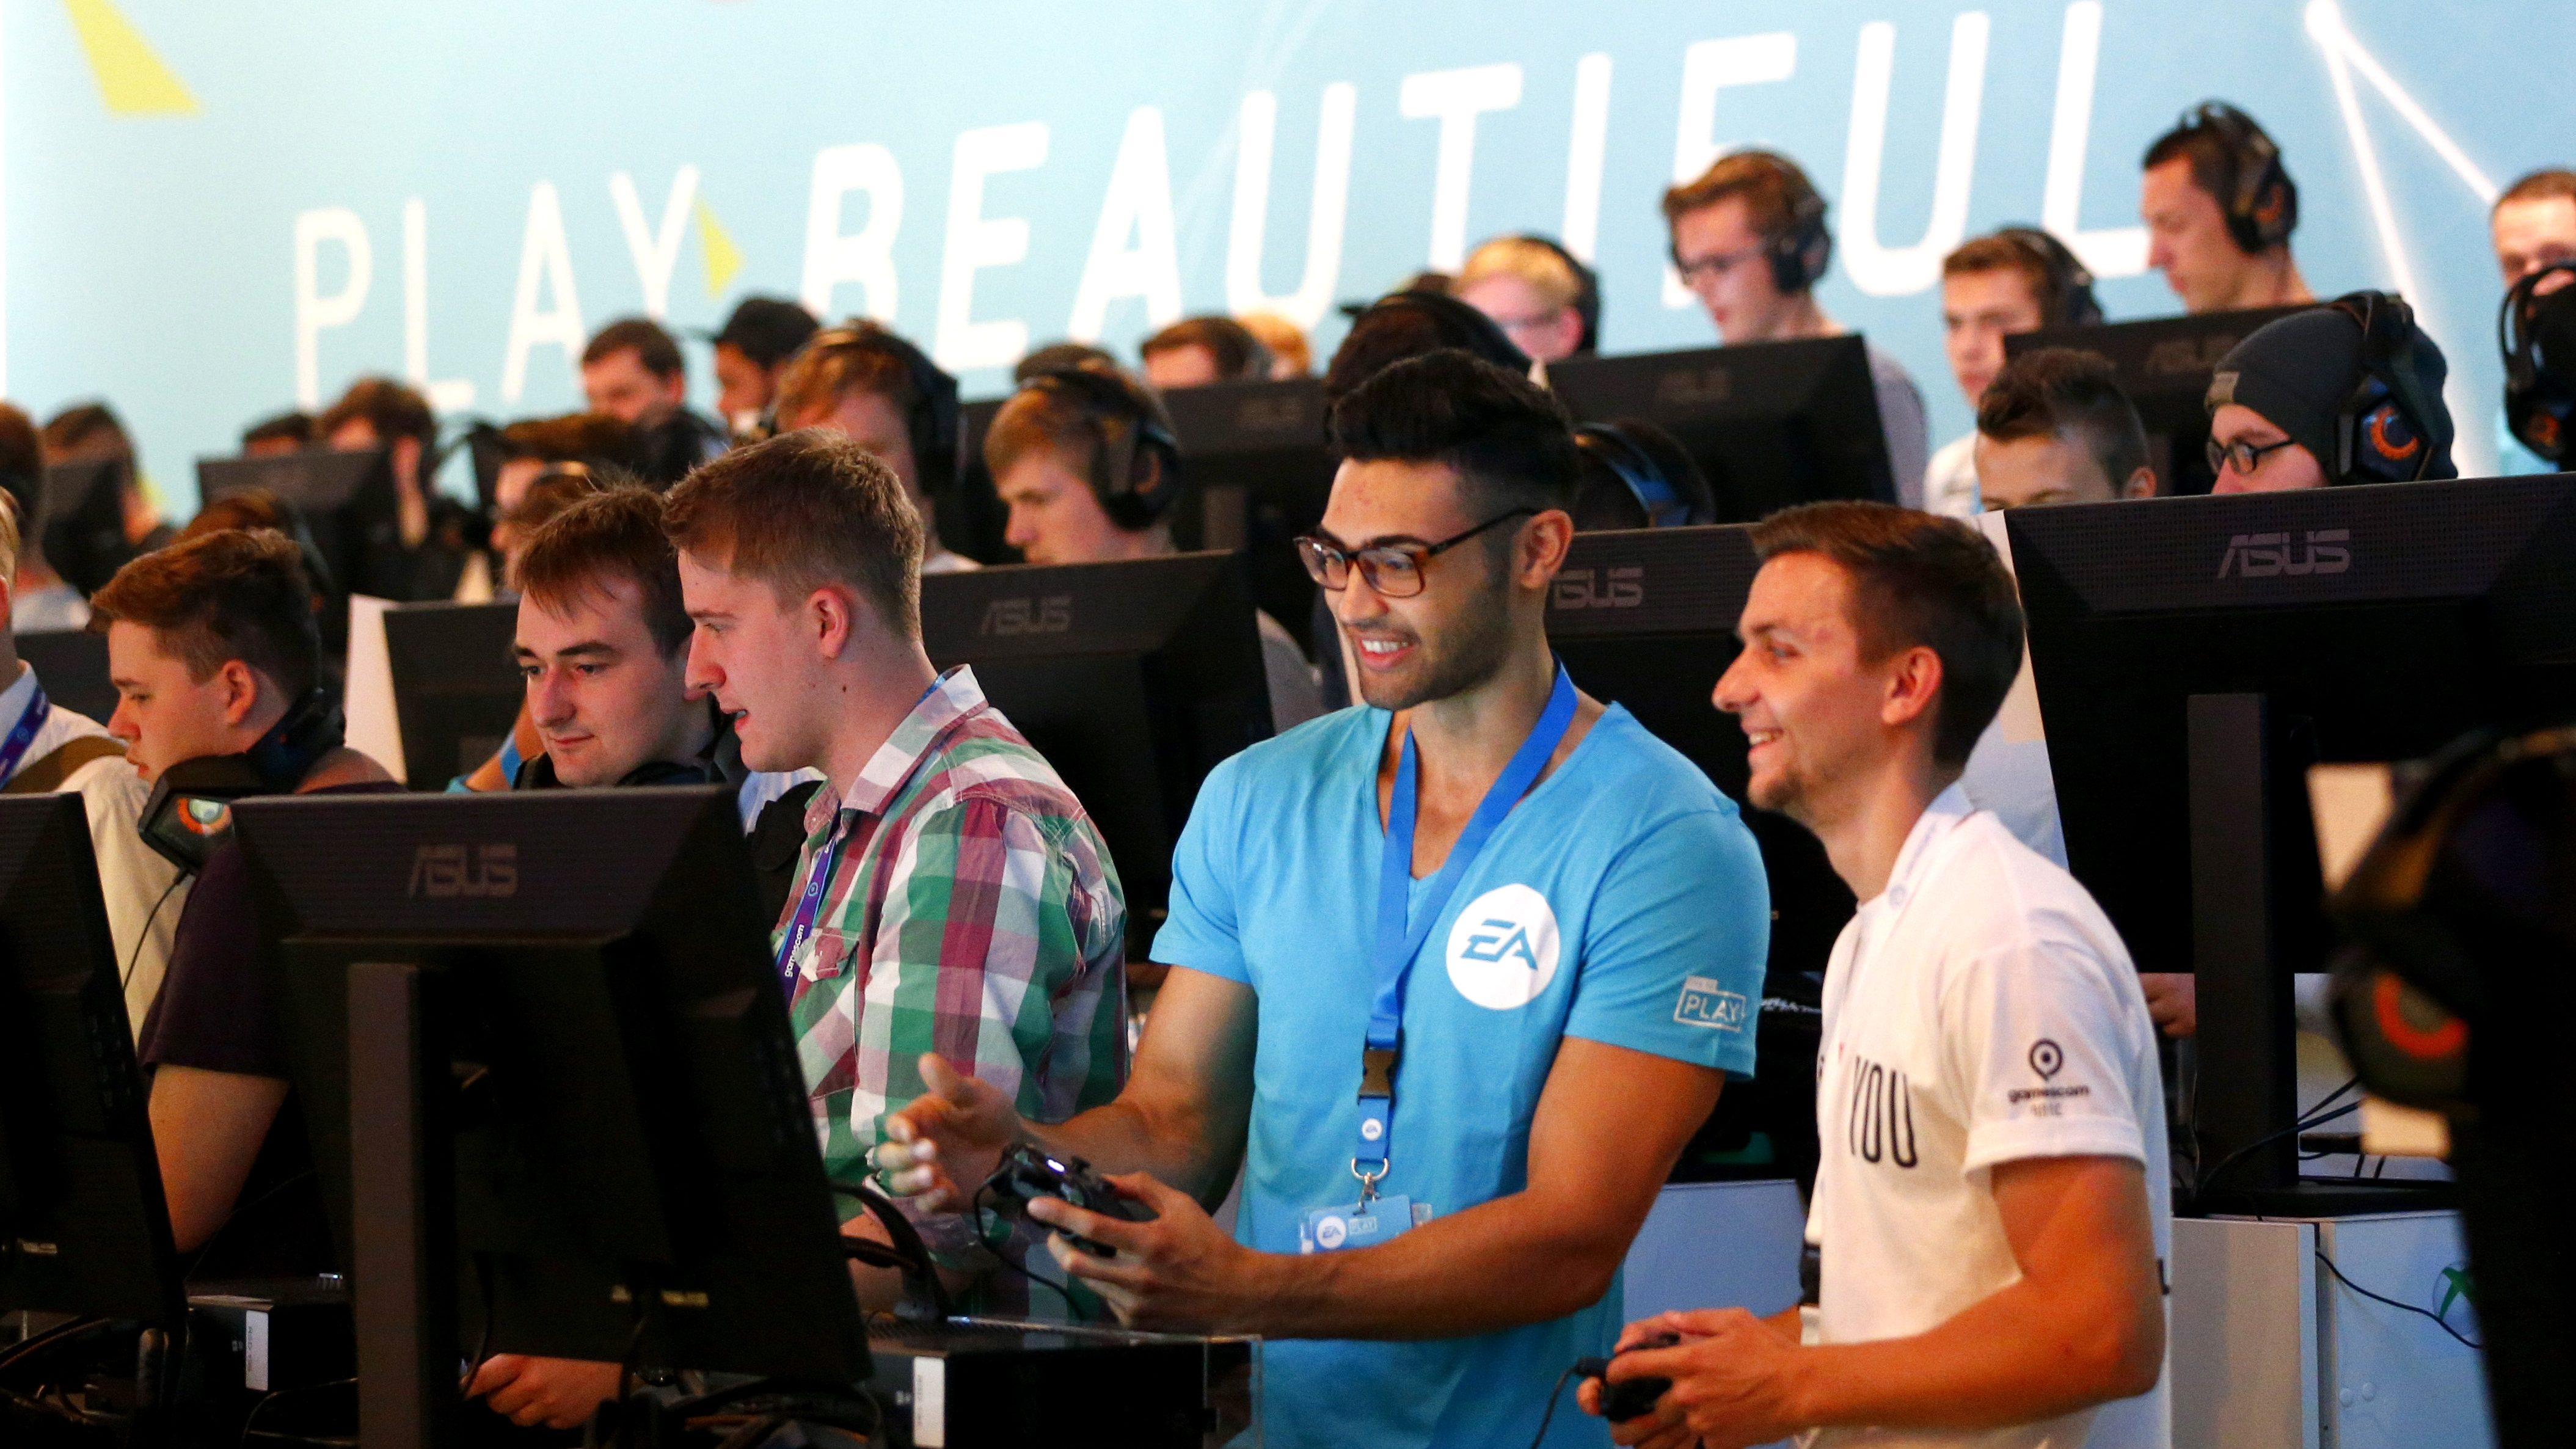 """Visitors play """"FIFA 16"""", published by EA Sports, using an Xbox One during the Gamescom fair in Cologne, Germany August 5, 2015. The Gamescom convention, Europe's largest video games trade fair, runs from August 5 to August 9."""